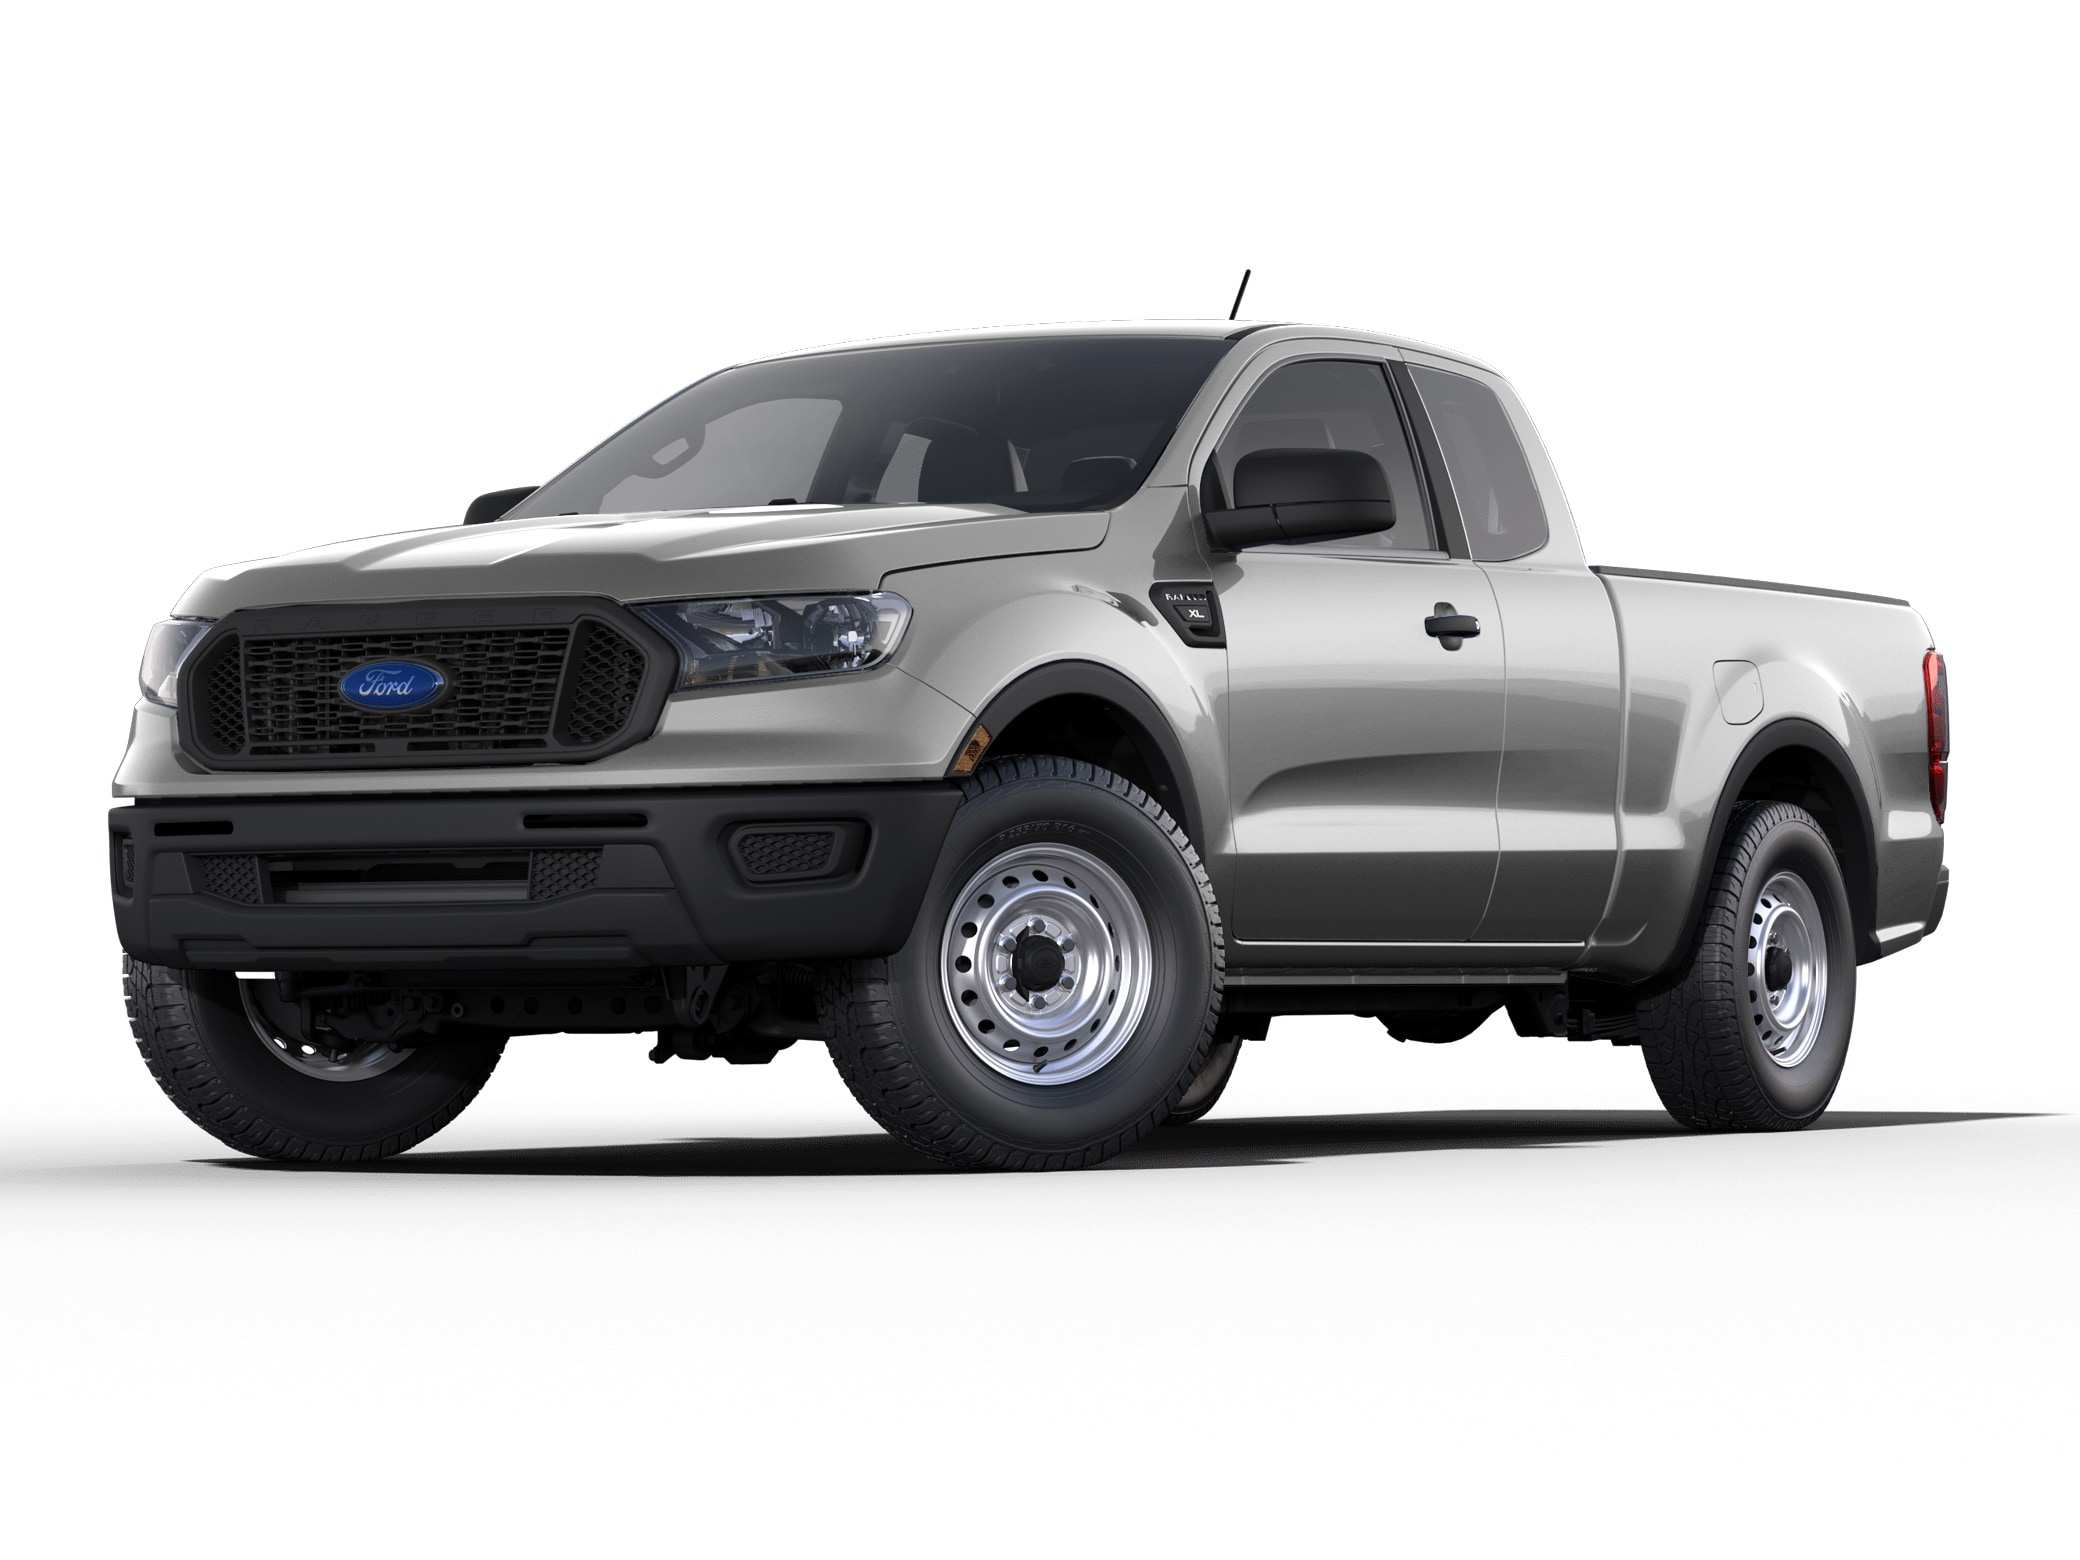 39 Best 2019 Ford Ranger Usa Price Specs